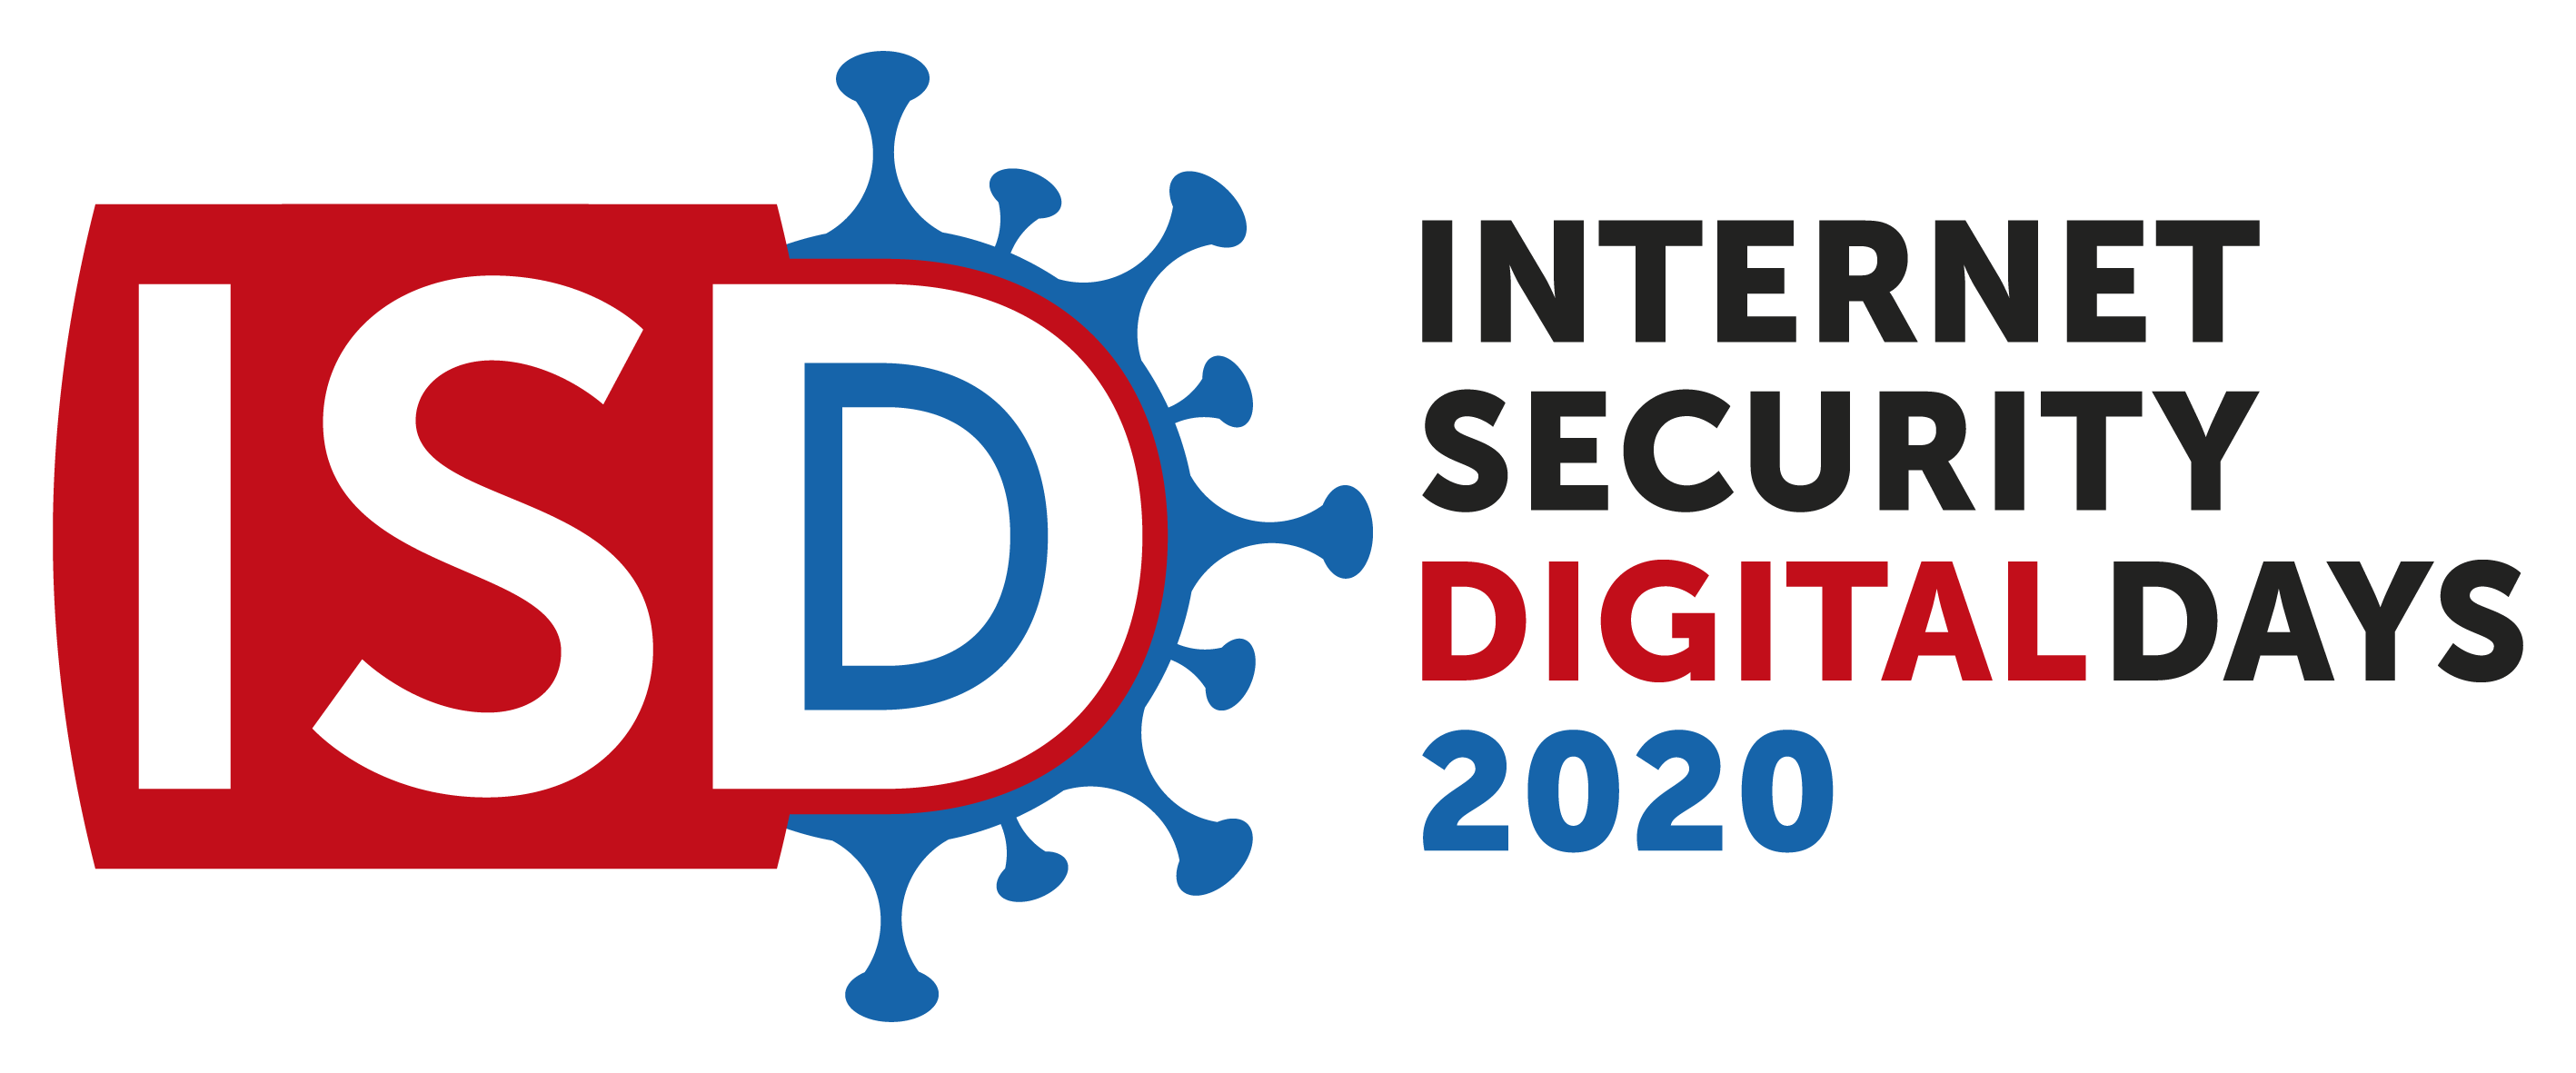 Internet Security Days 2020 5